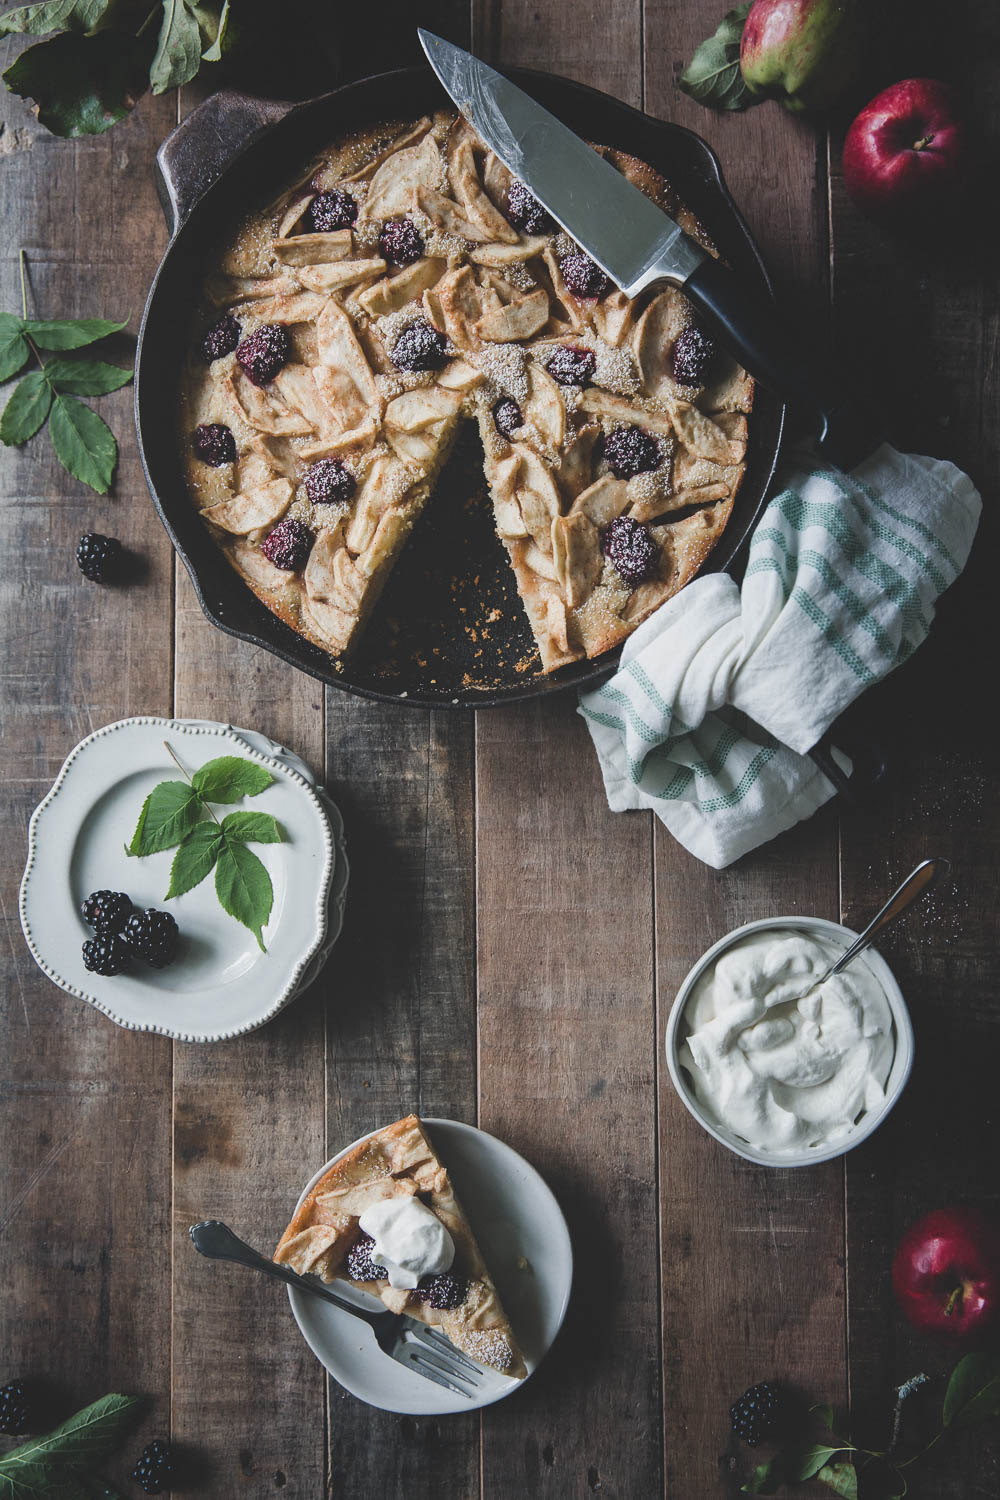 Apple Blackberry Skillet Cake with Maple Bourbon Whipped Cream